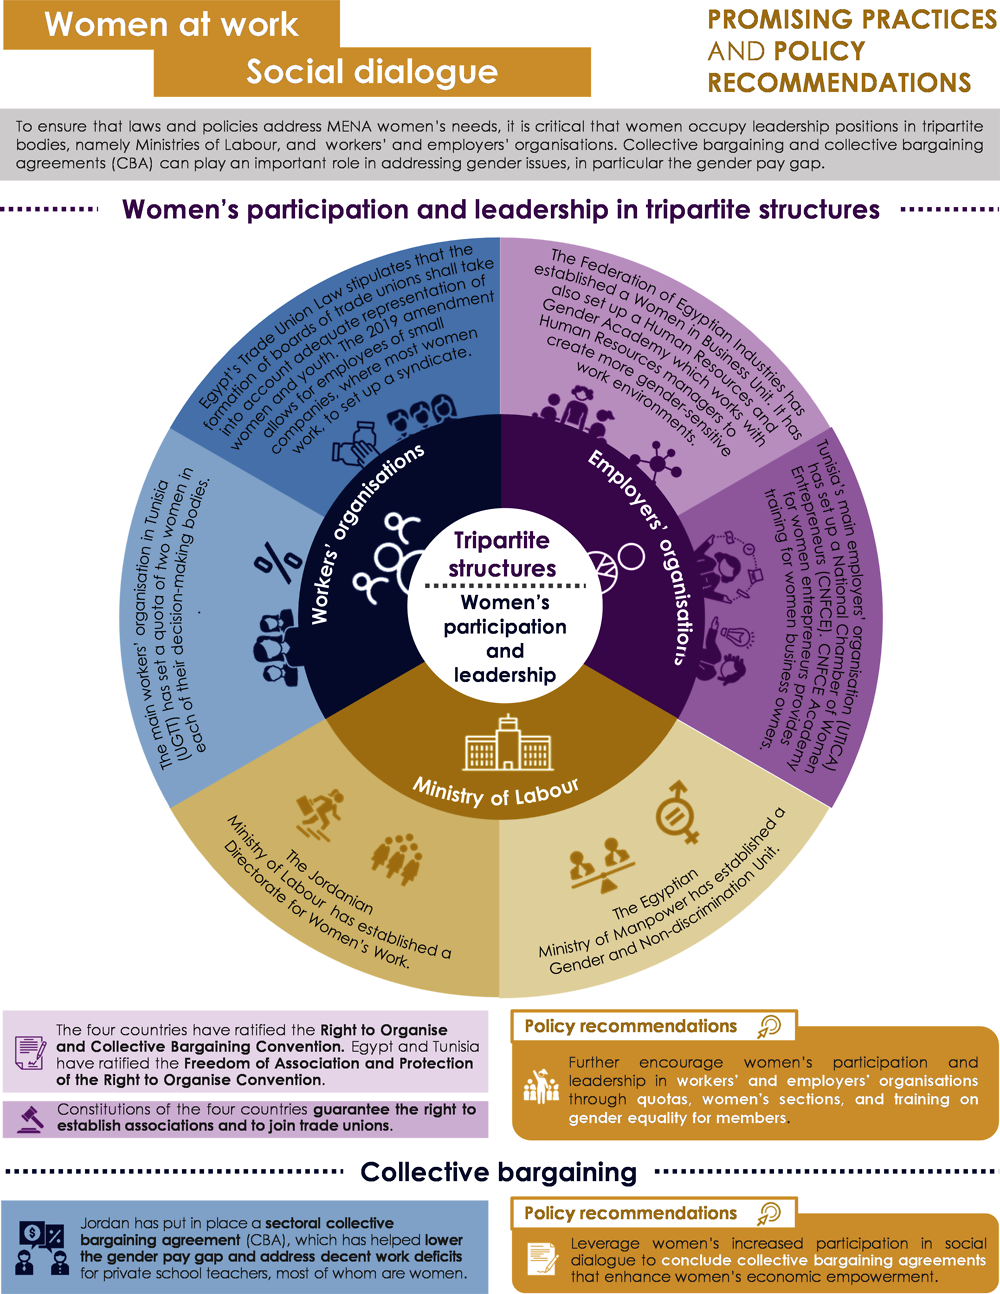 Infographic 2.3. Women at work: social dialogue